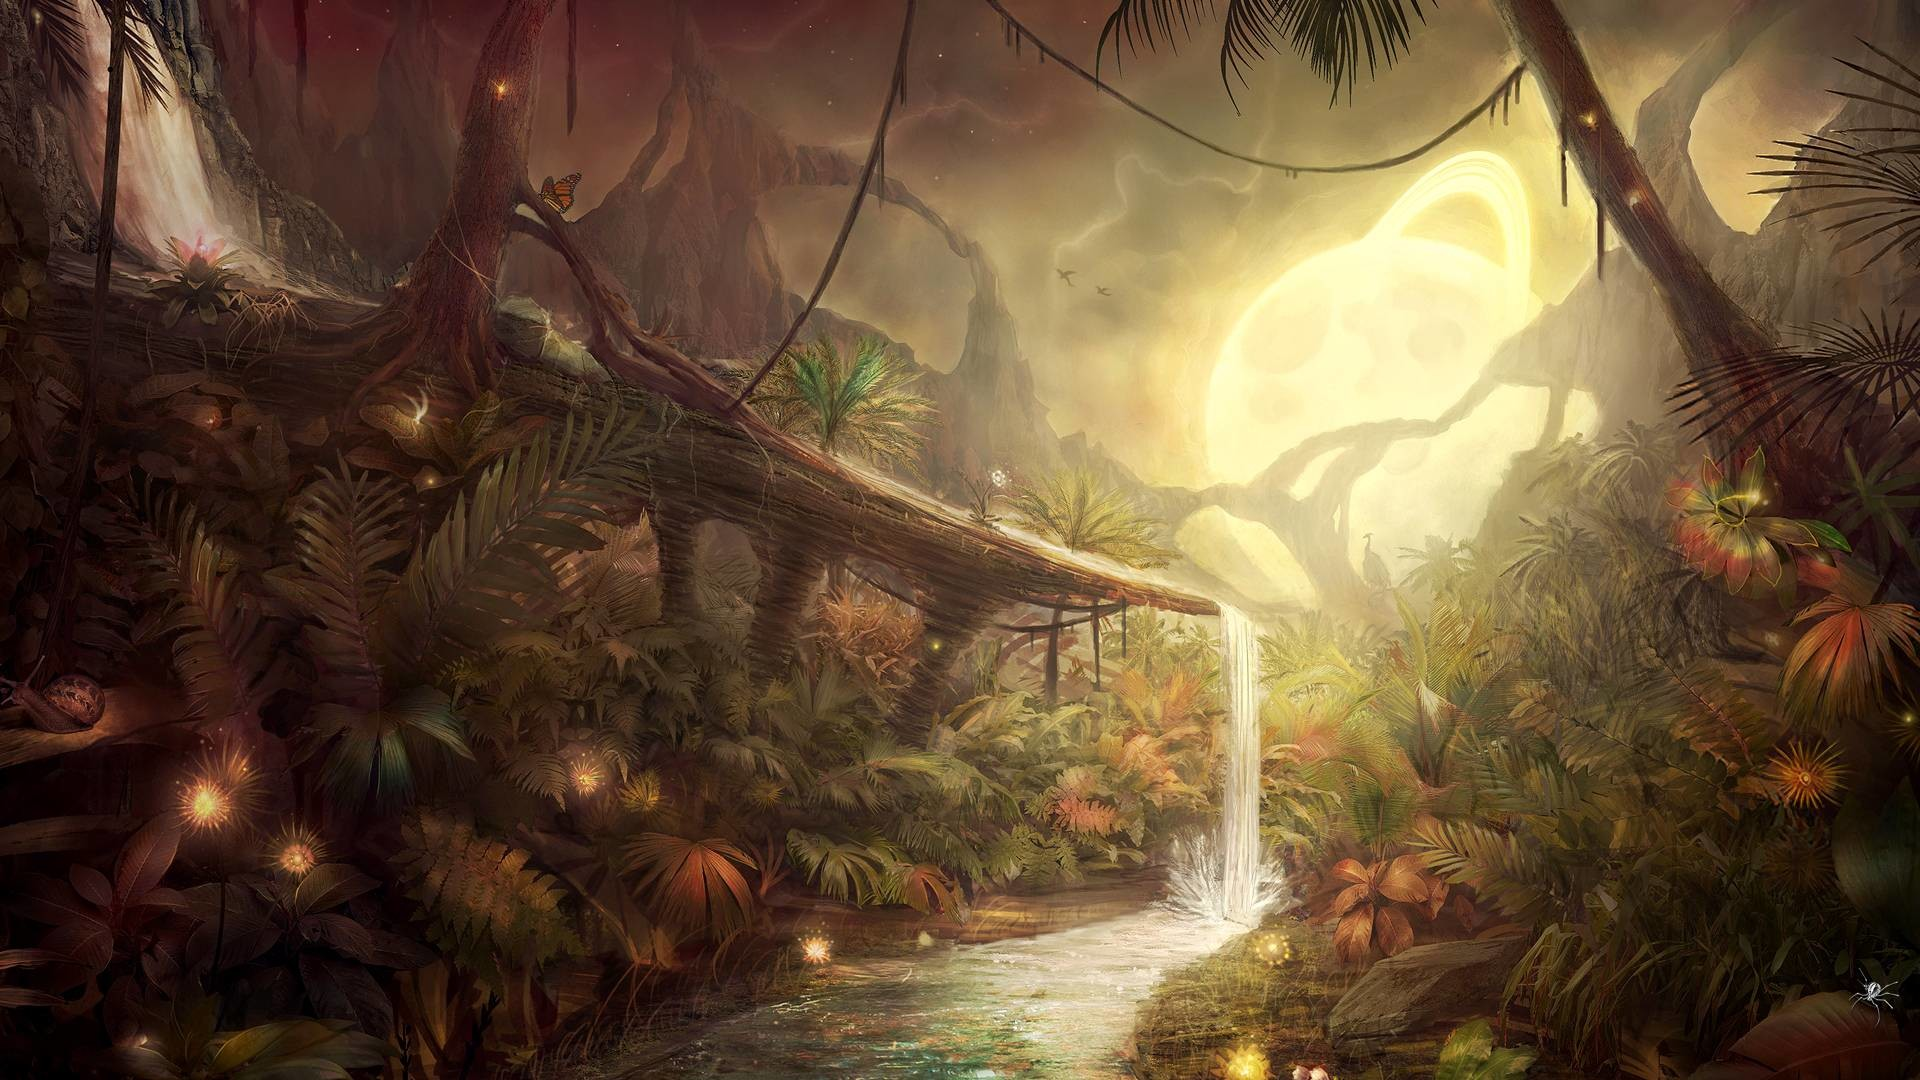 1920x1080 Small waterfall in the fantasy forest wallpaper, Small waterfall in the fantasy  forest Digital Art HD desktop wallpaper